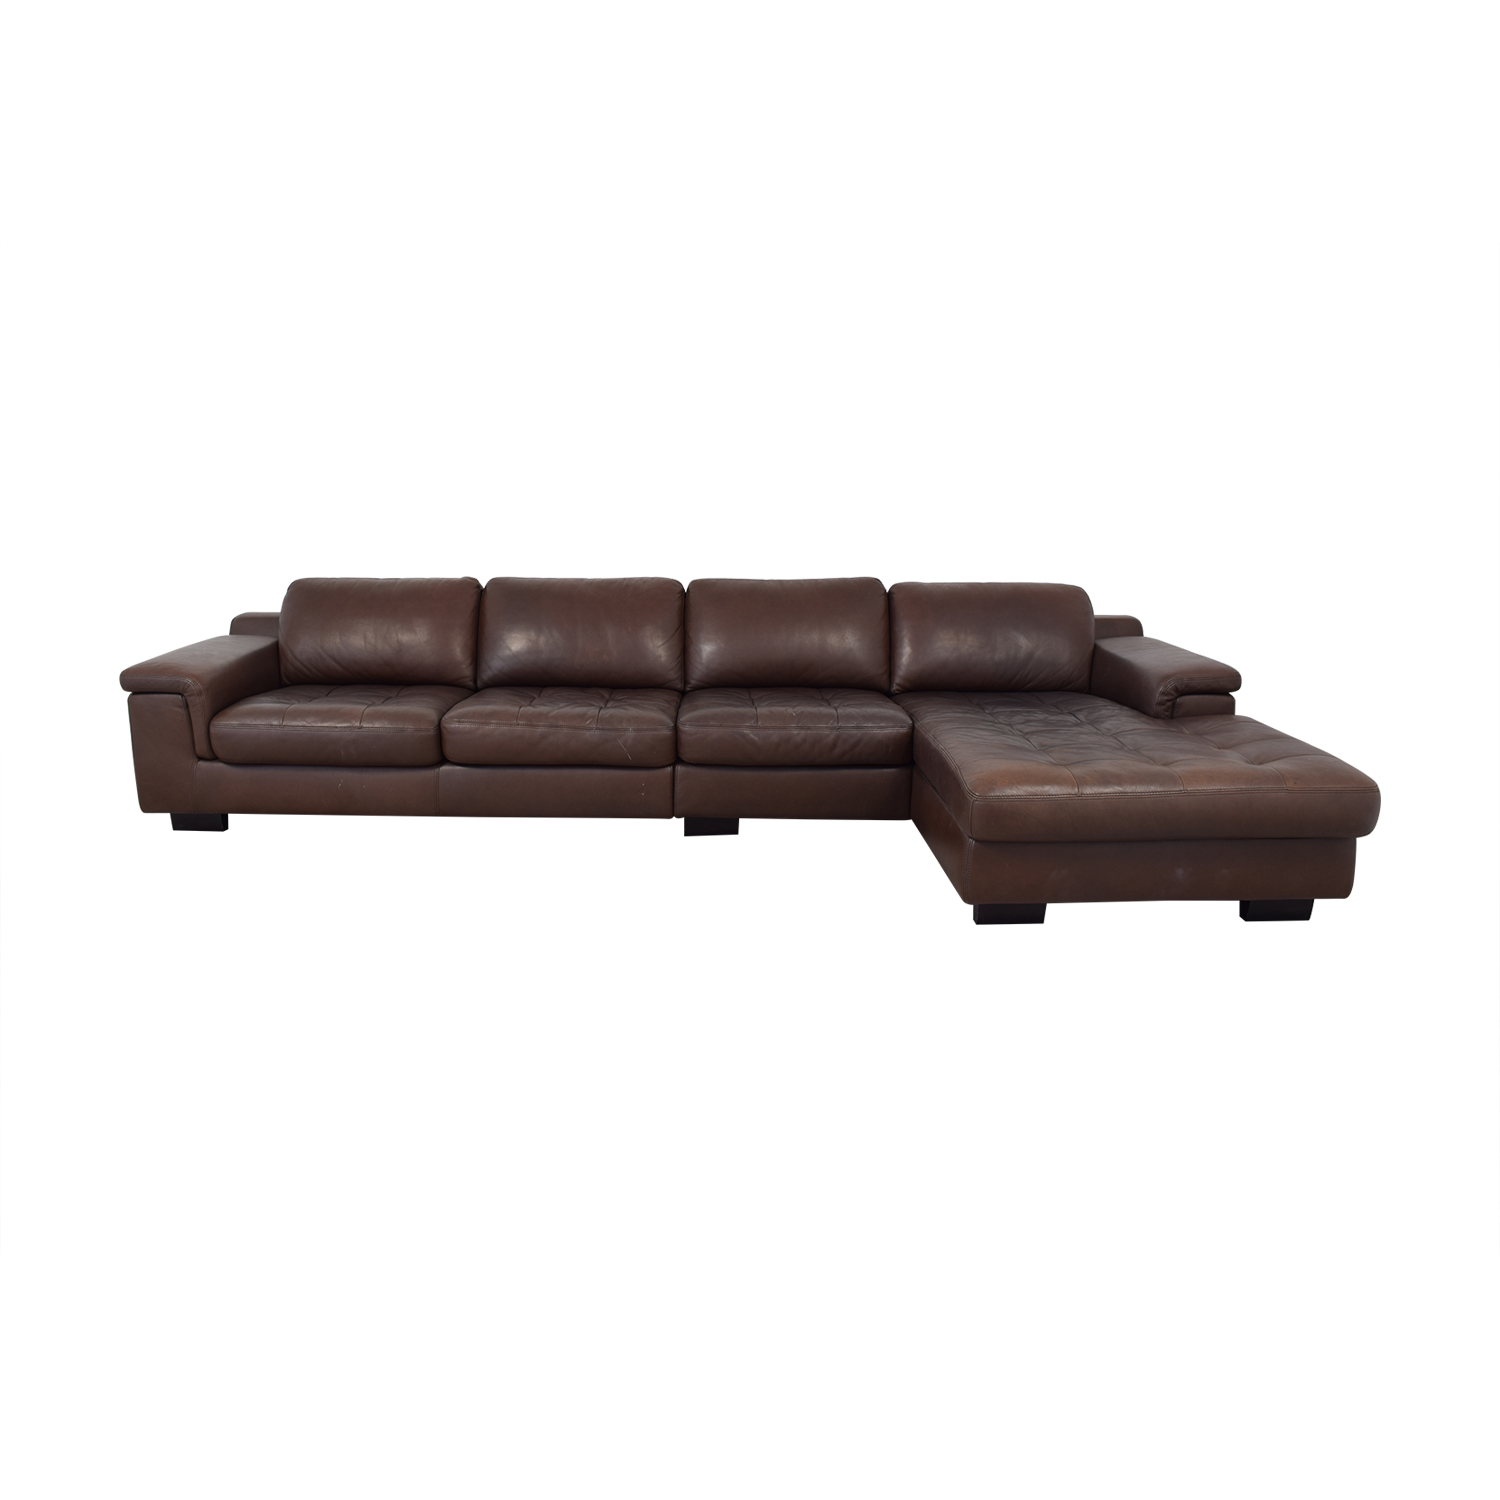 buy W. Schillig W. Schillig Tufted Sectional online